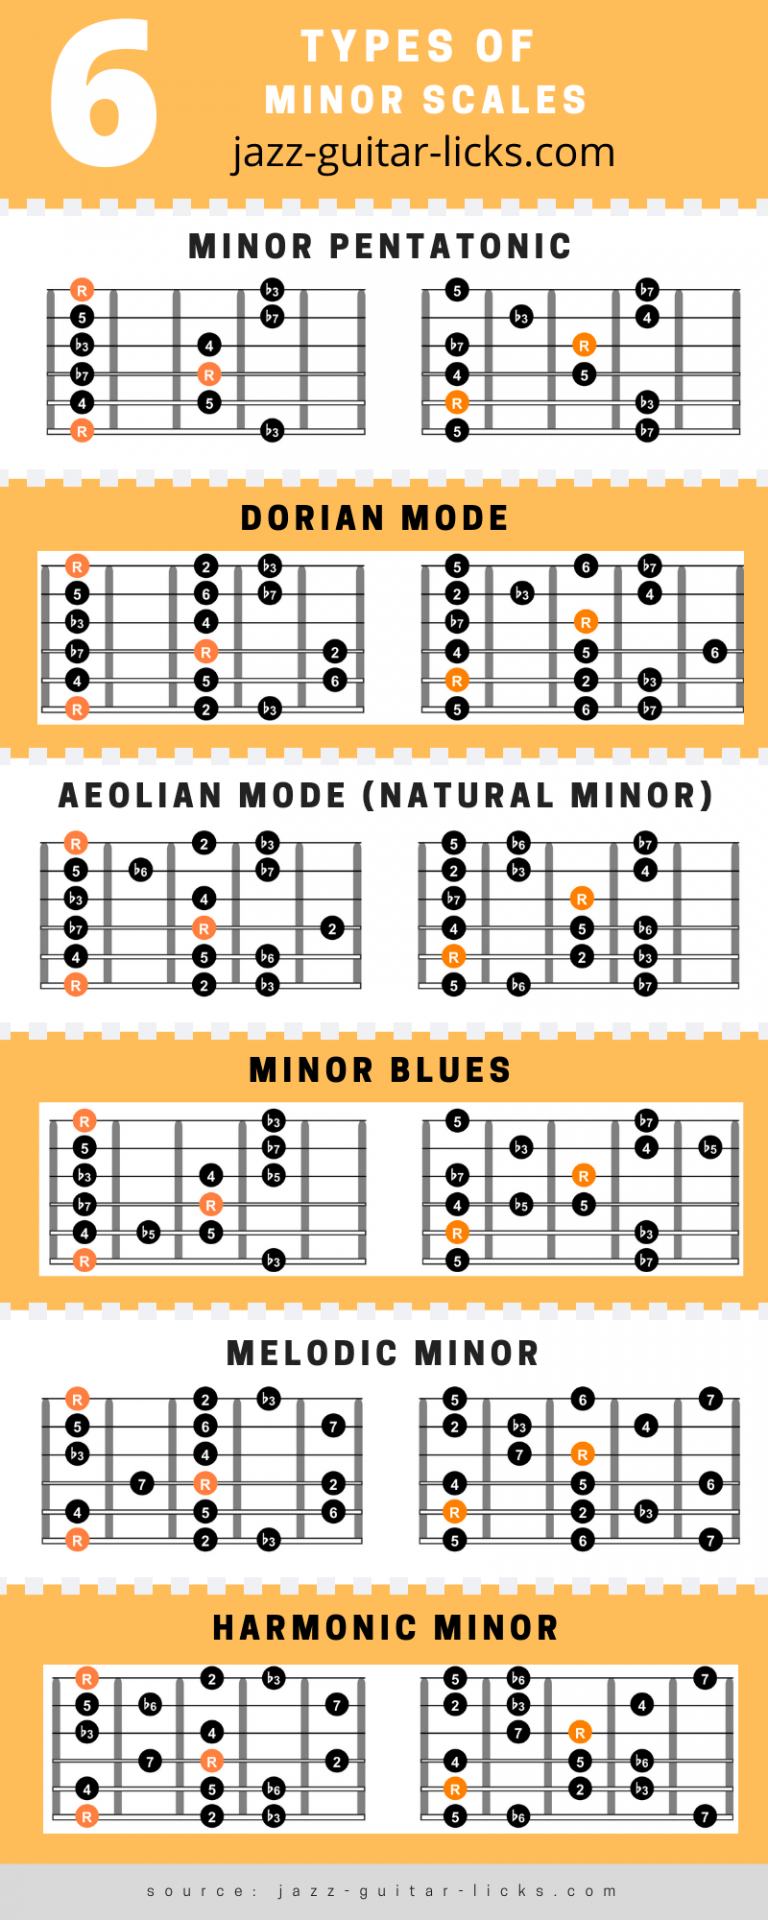 Types of minor scales on guitar